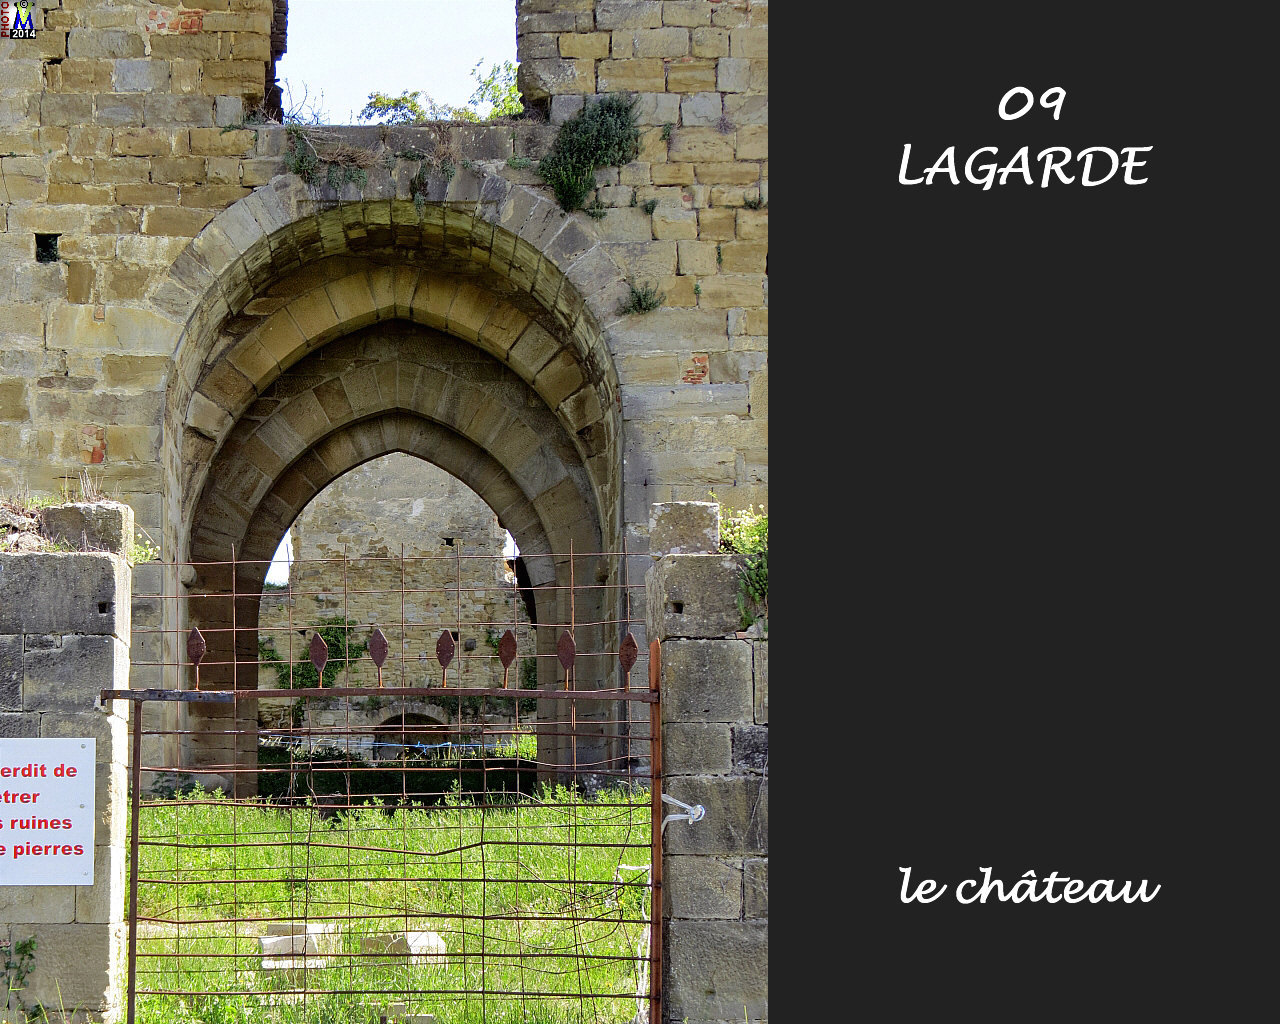 09LAGARDE_chateau_134.jpg